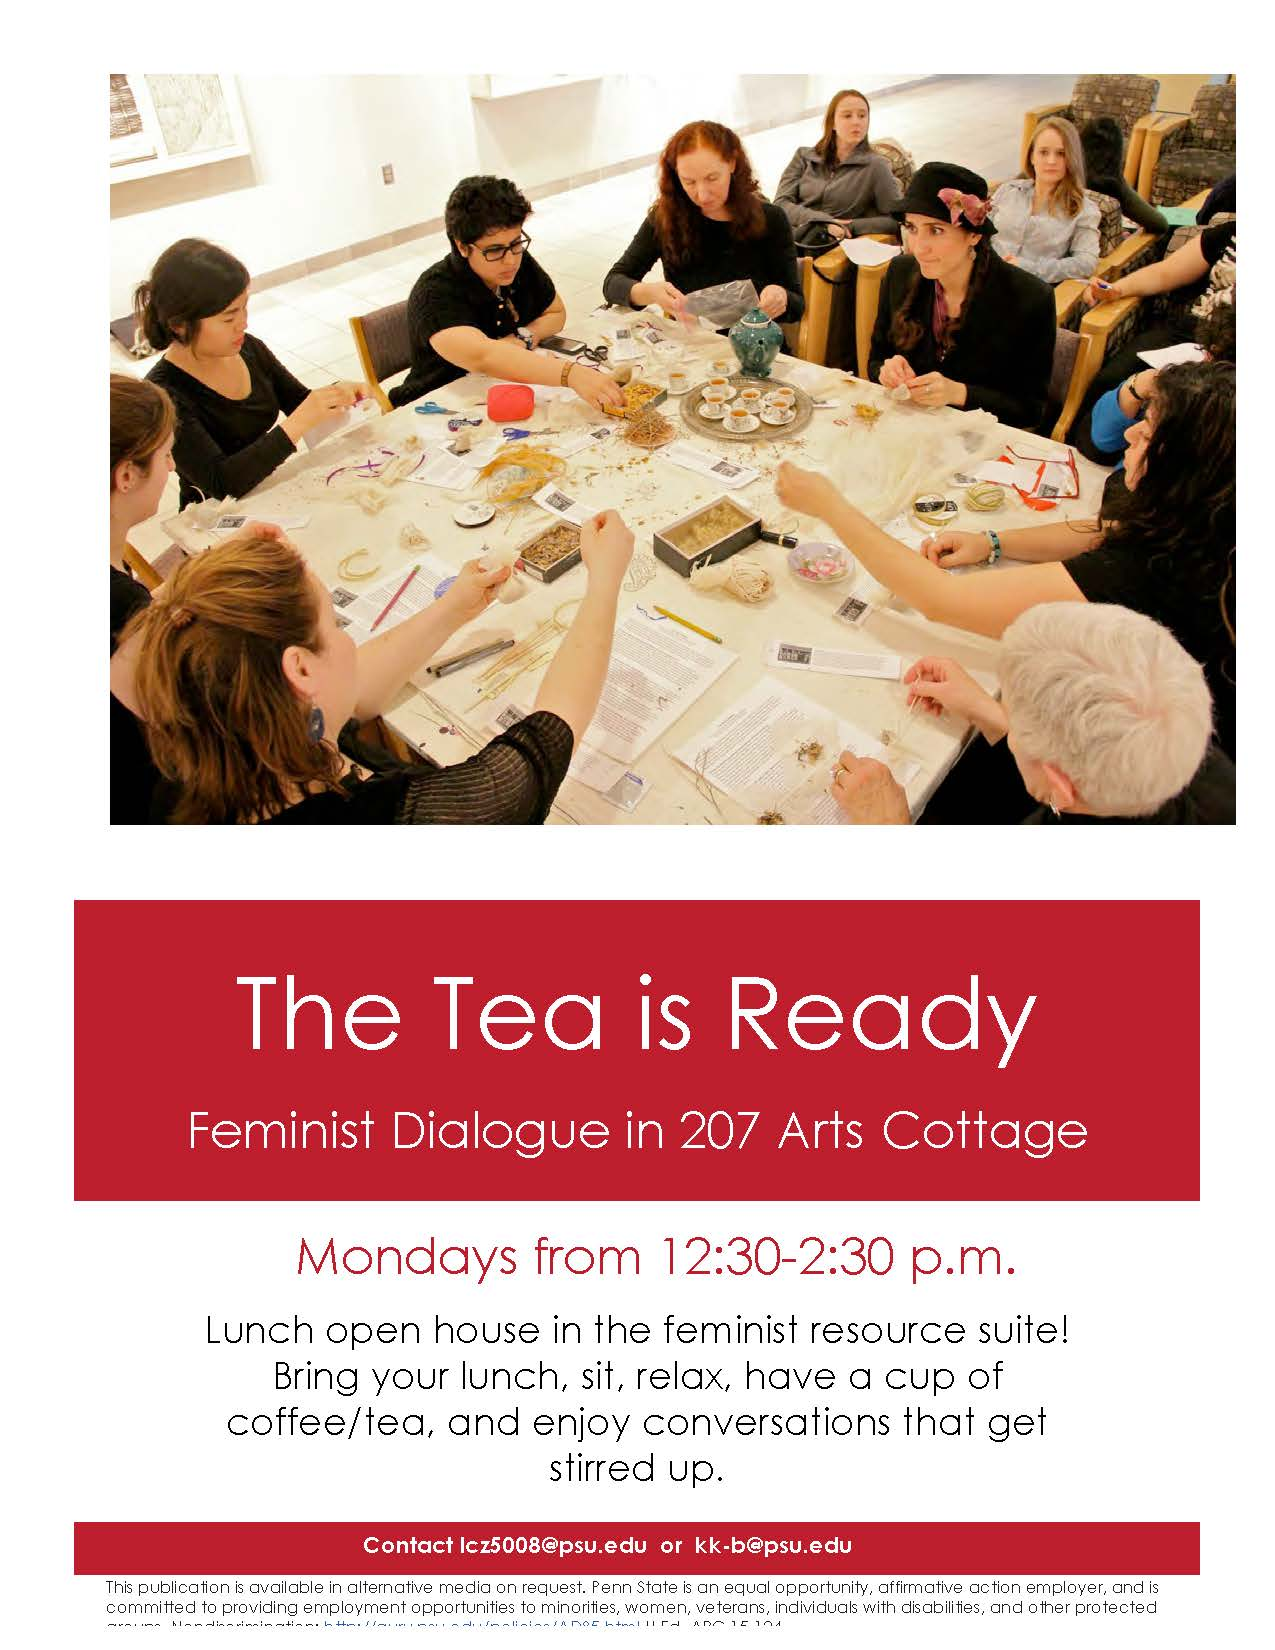 The Tea is Ready Flyer Spring 2015